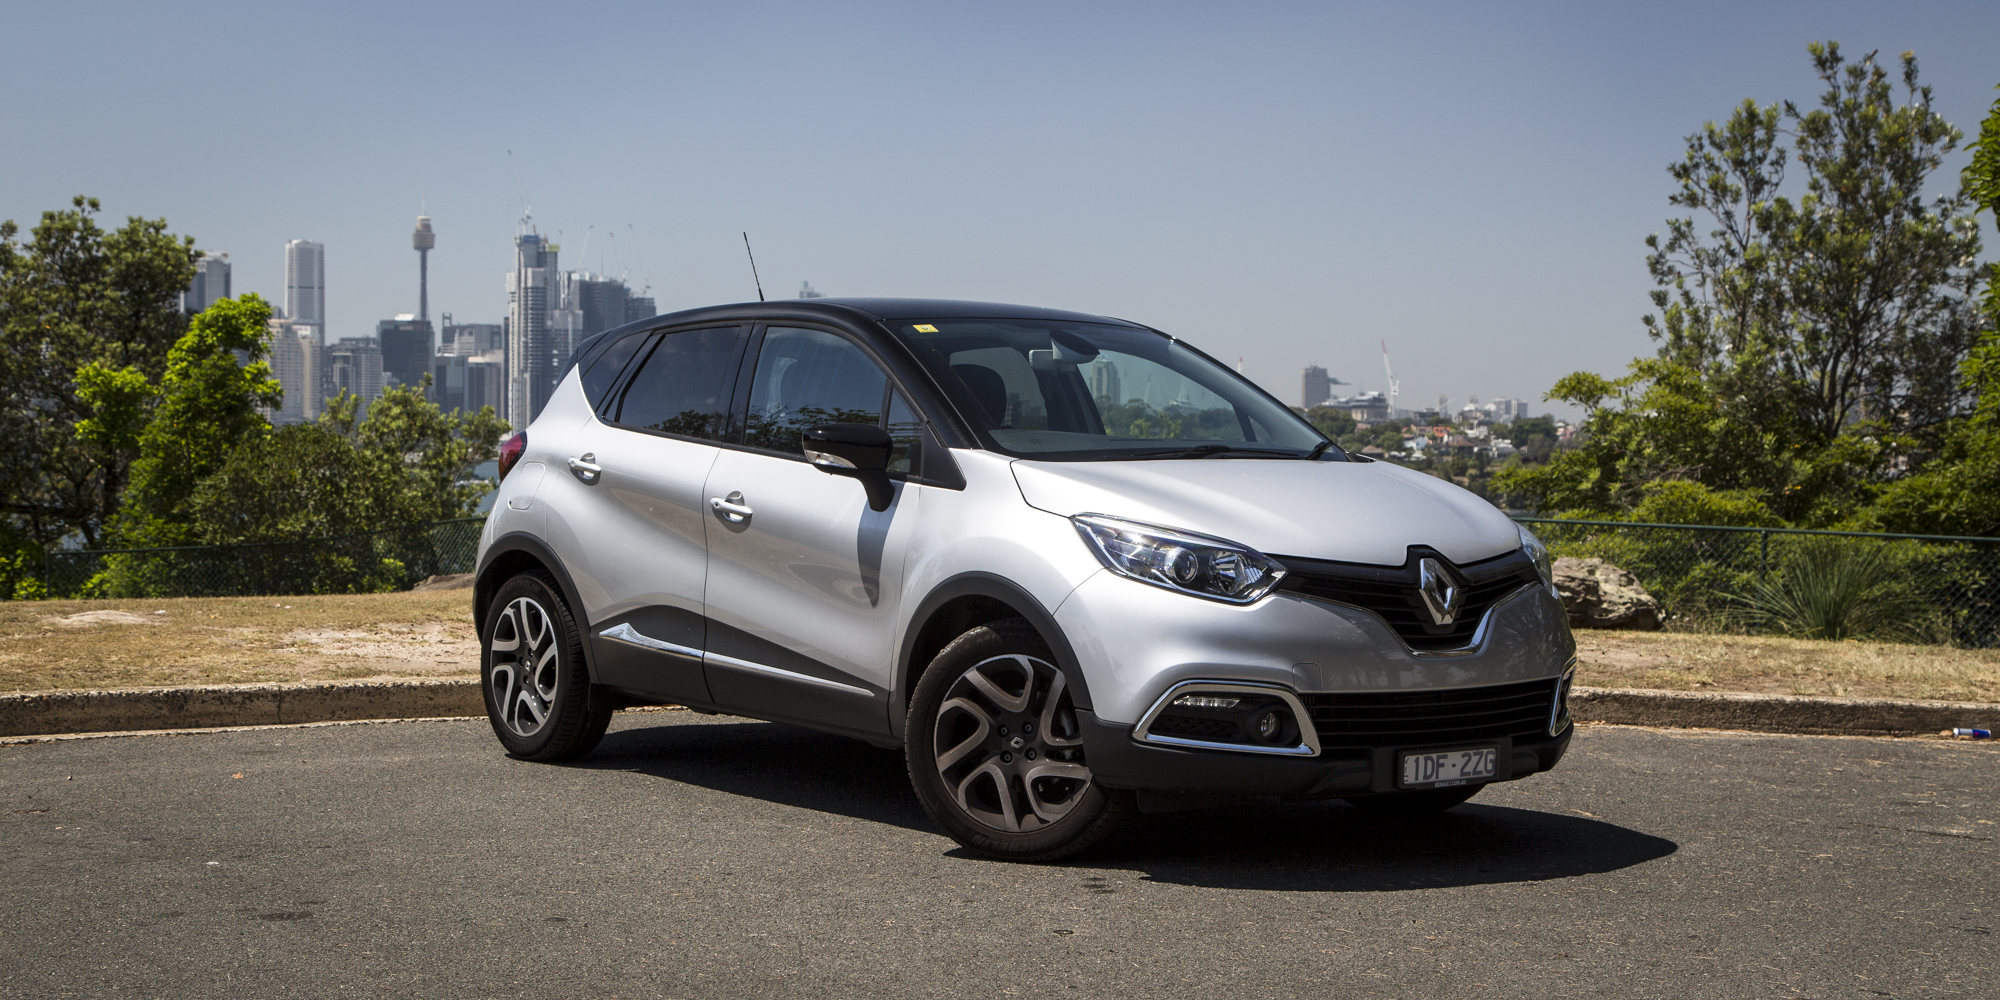 renault captur facelift and 39 ev surprise 39 coming to geneva photos 1 of 3. Black Bedroom Furniture Sets. Home Design Ideas